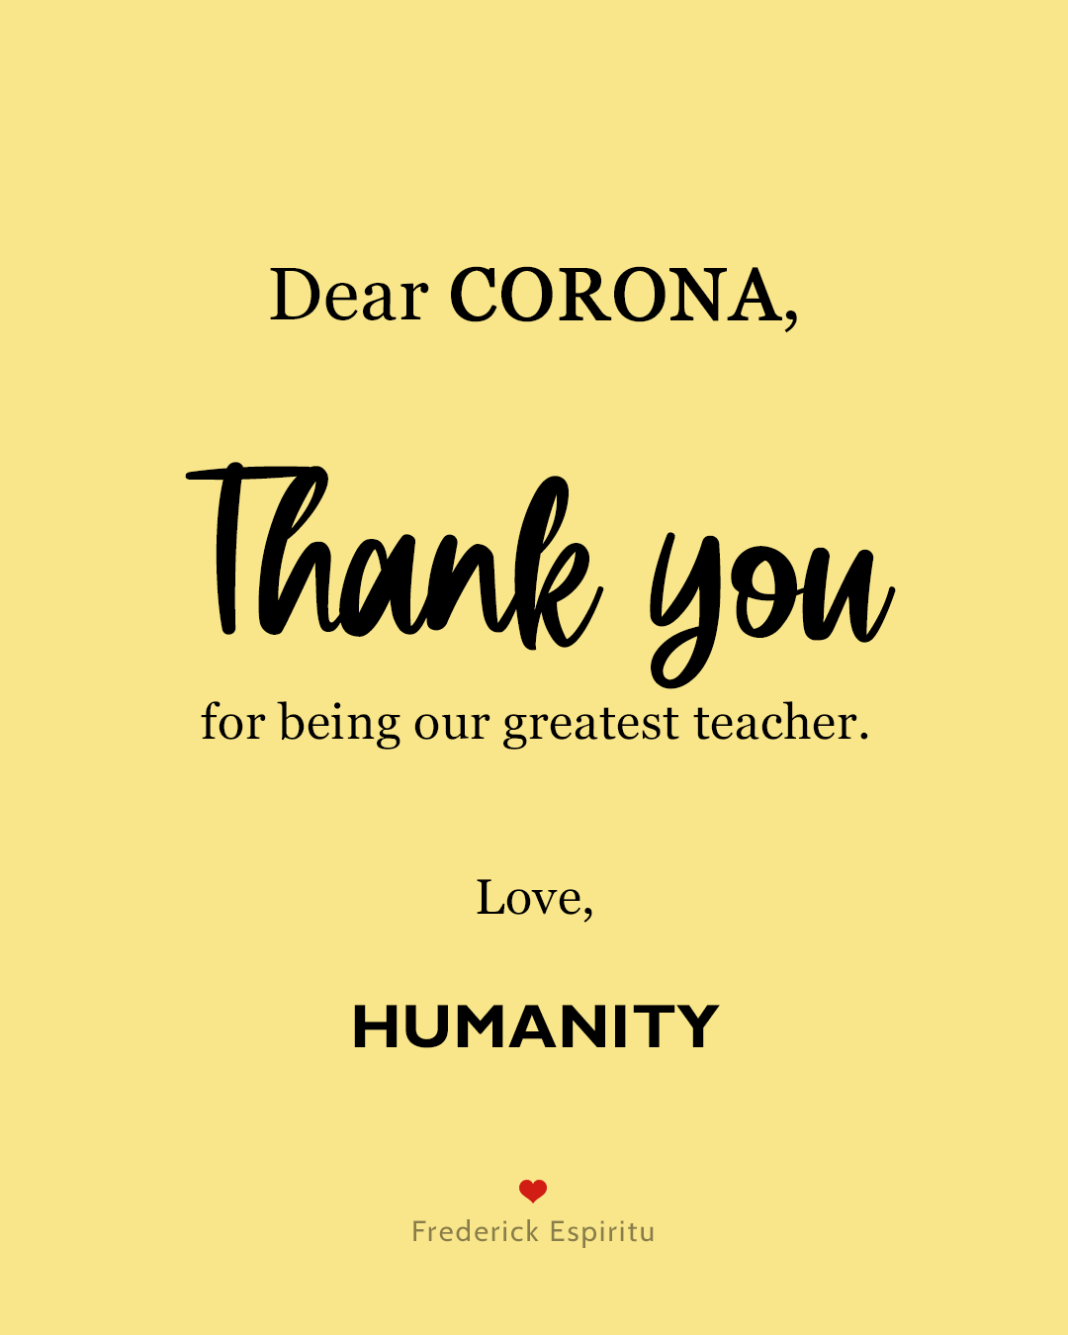 thank you corona love letter